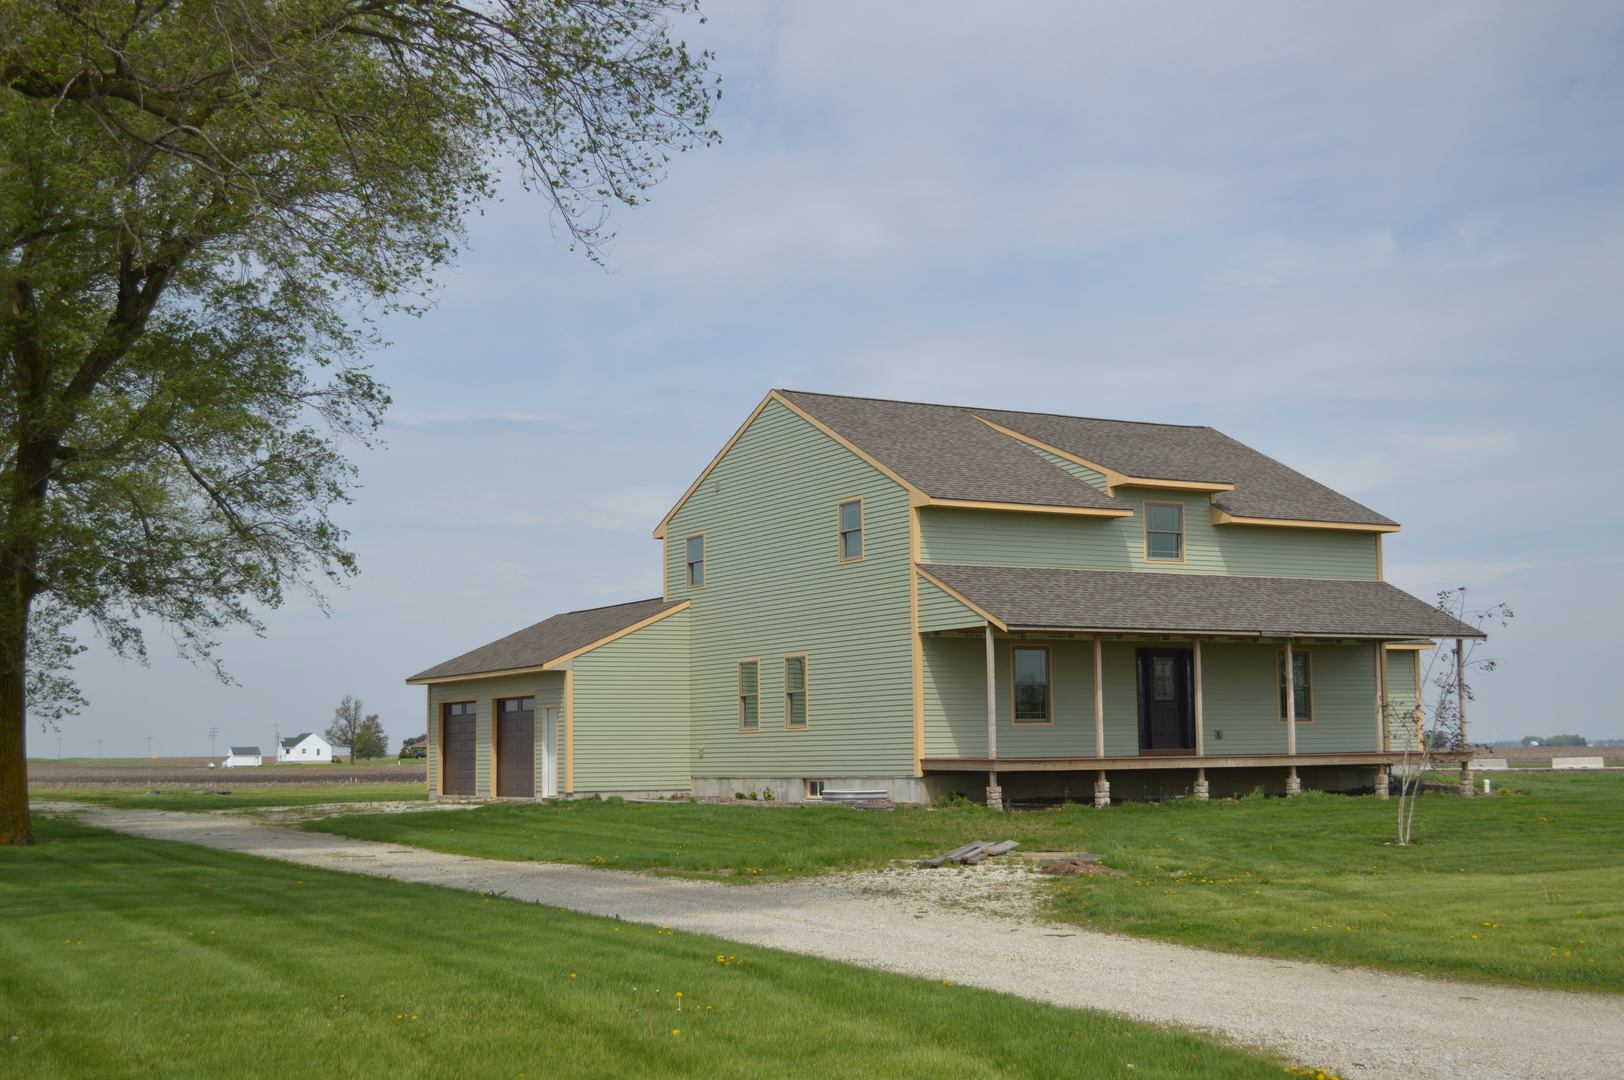 2989 County Road 200 East, Fisher, Illinois, 61843